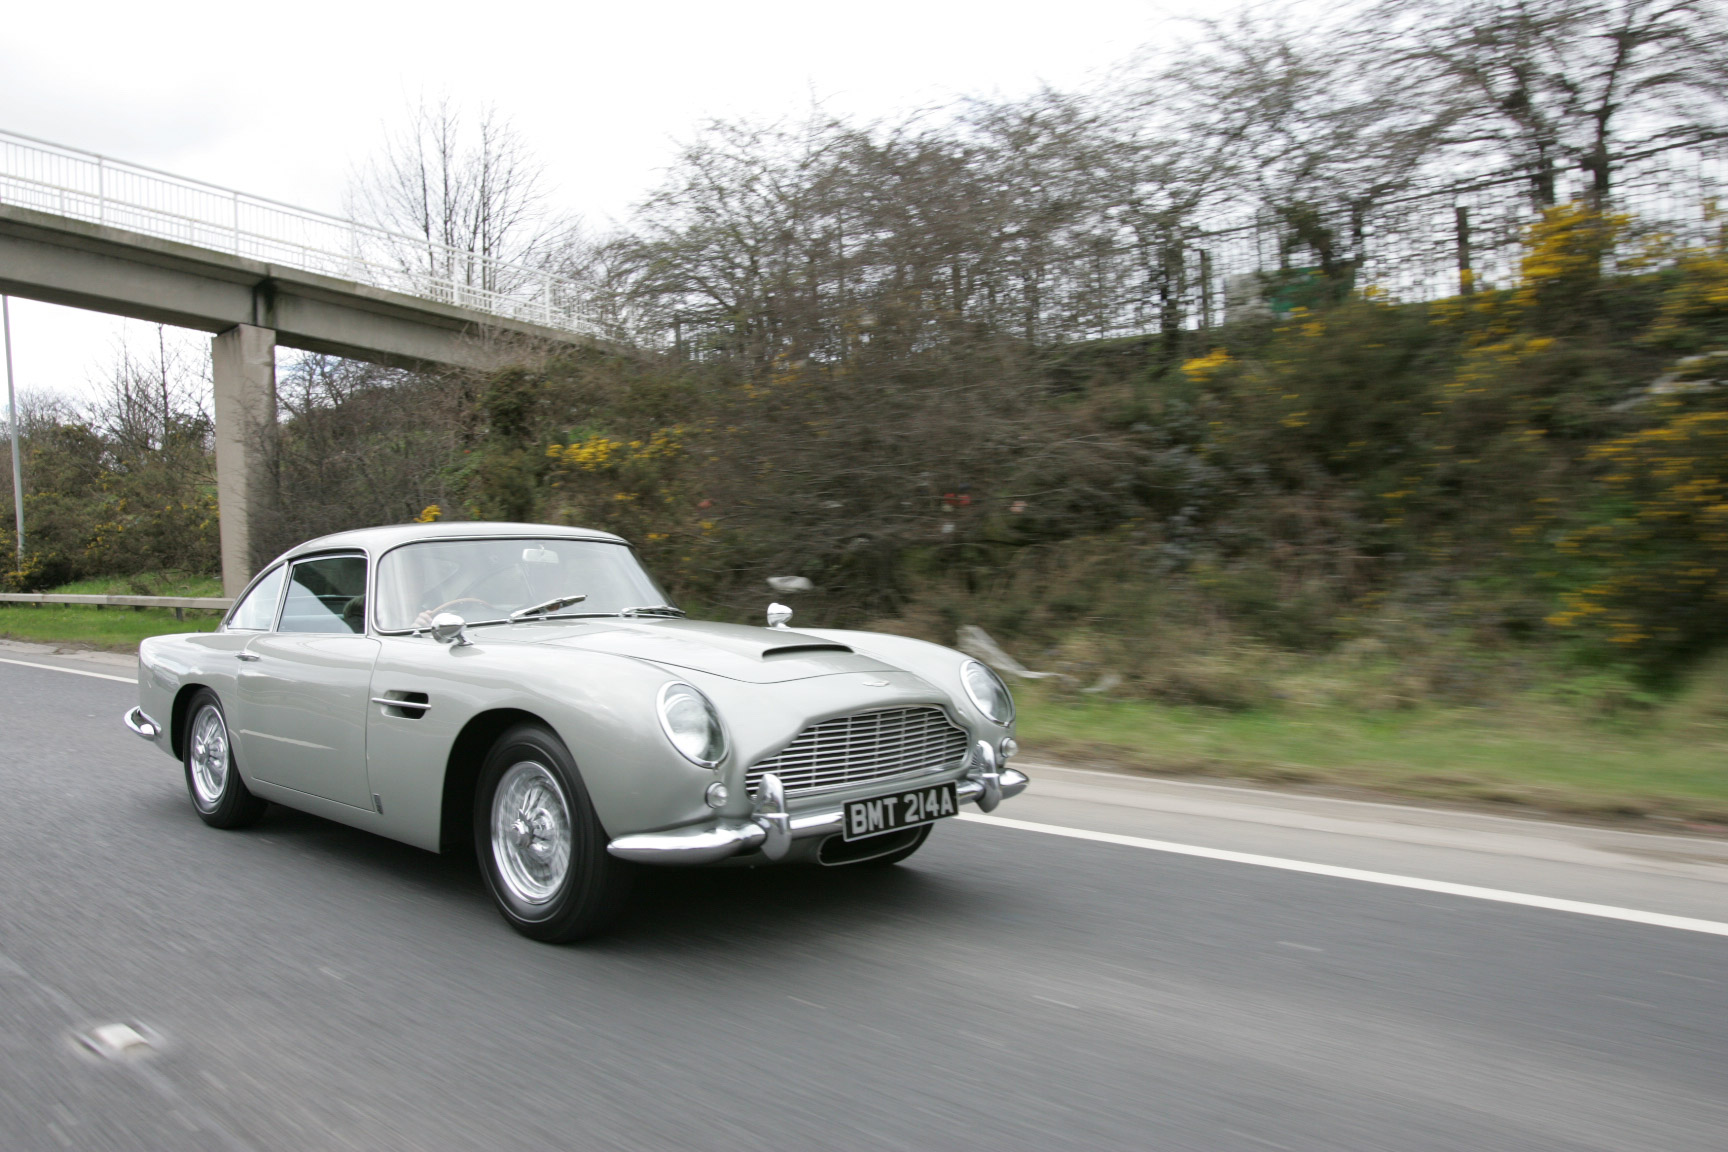 1965 Aston Martin DB5 Rolling Highway 3/4